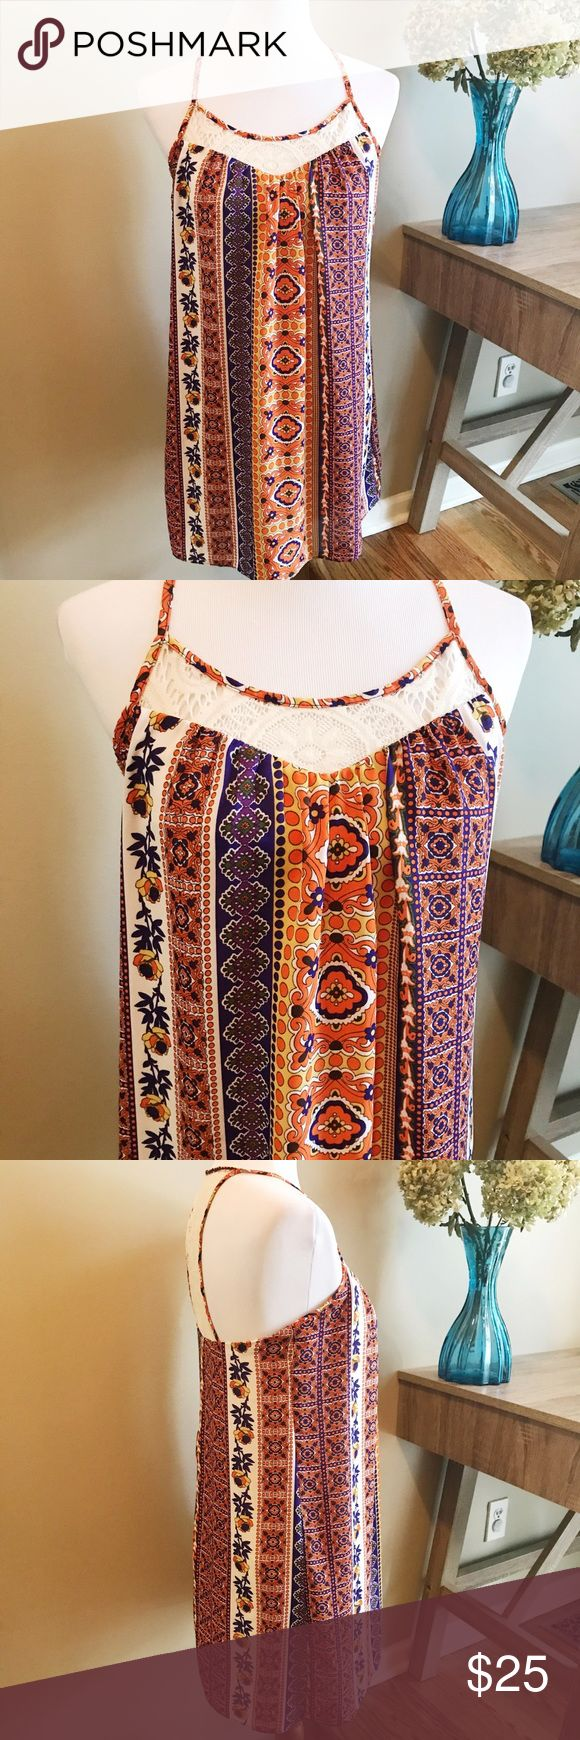 """🎂 B. Smart Racerback Print Dress Excellent Condition B. Smart Racerback Print Dress. Features a feminine crocheted racerback and neckline. Perfect for summer. Lined. 100% Polyester. Approximate measurements laying flat: armpit to armpit 15.5"""", length shoulder to hem 33"""". 👗👛👠👙👕Bundle & Save! B. Smart Dresses"""